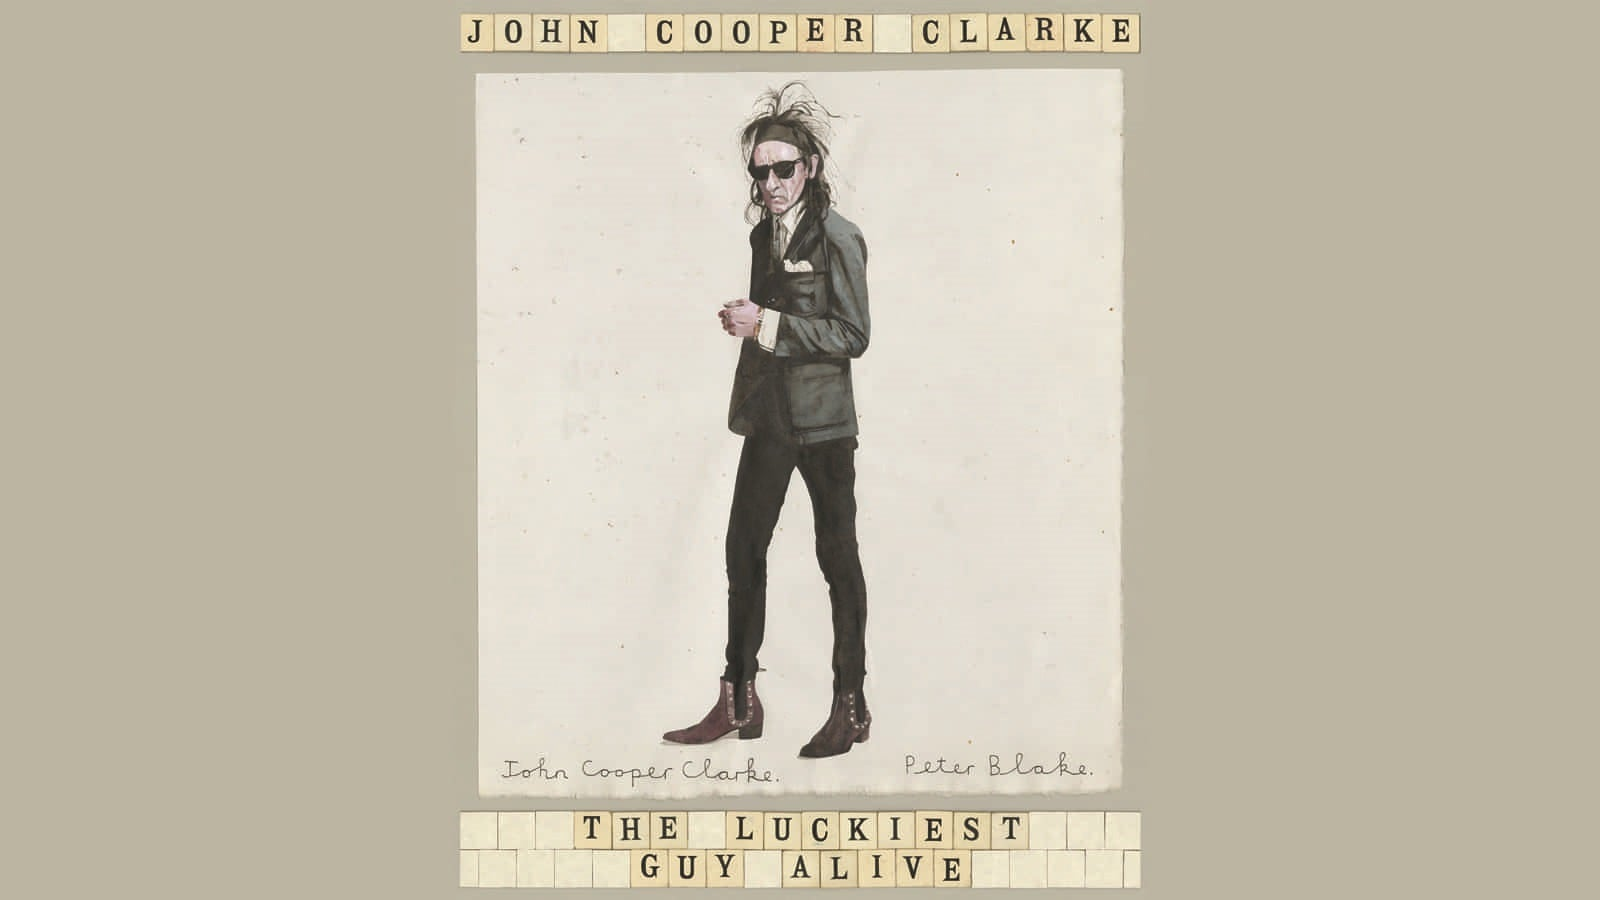 Section of the The Luckiest Guy Alive book cover showing an illustration of John Cooper Clarke